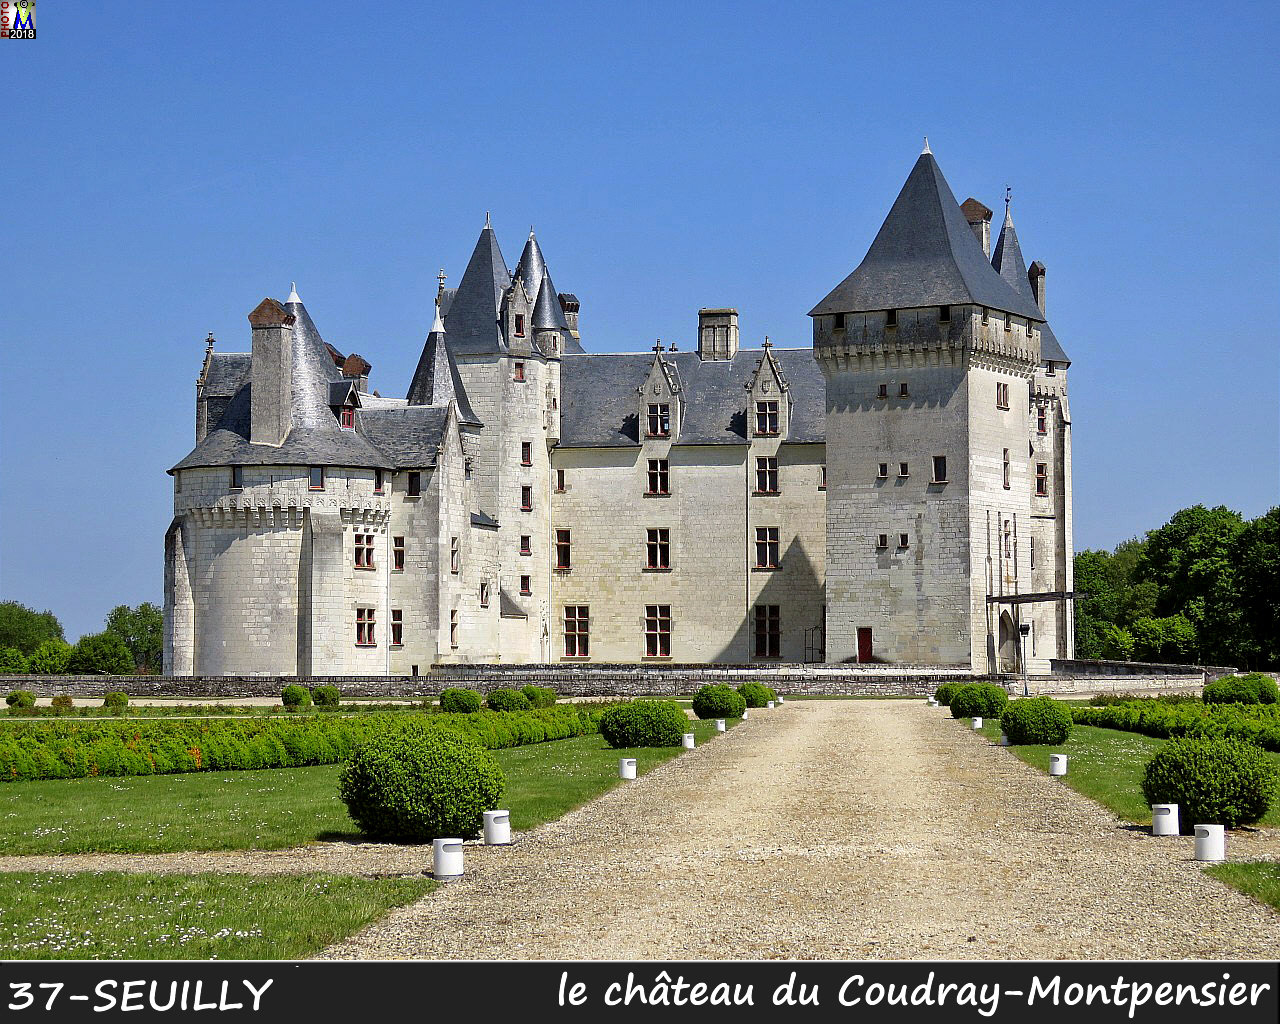 37SEUILLY_chateau_1004.jpg